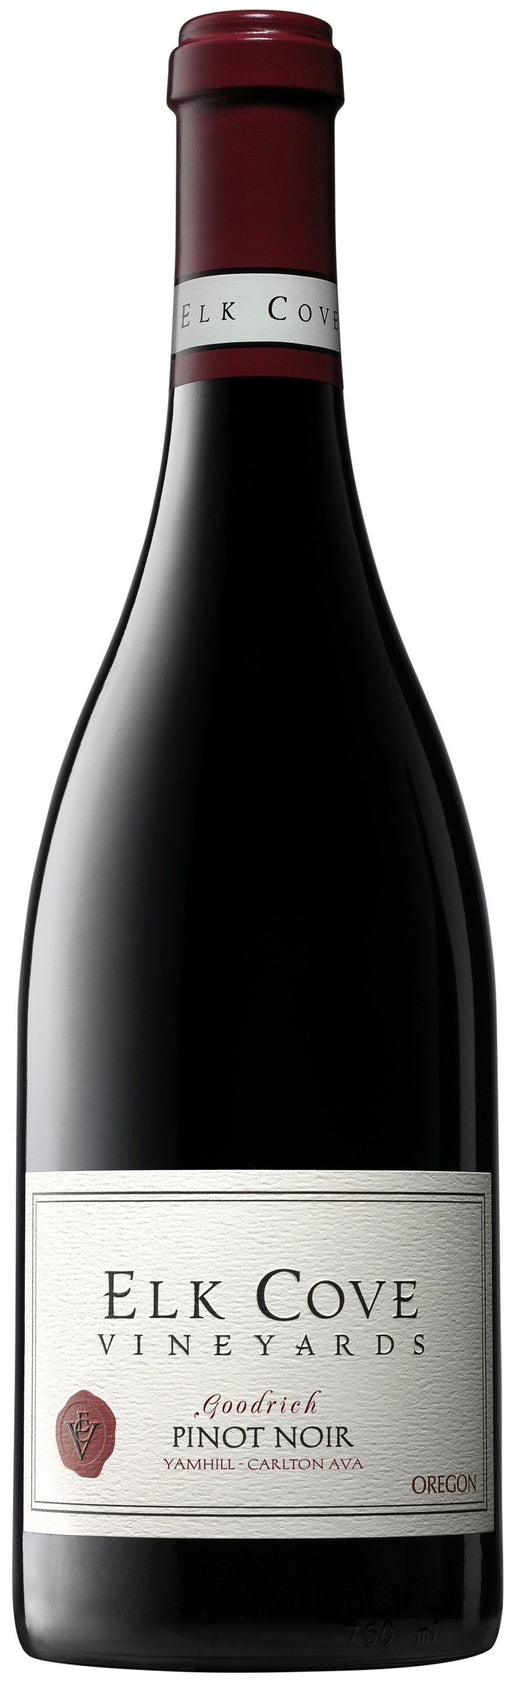 Elk Cove Goodrich Vineyard Pinot Noir 2015